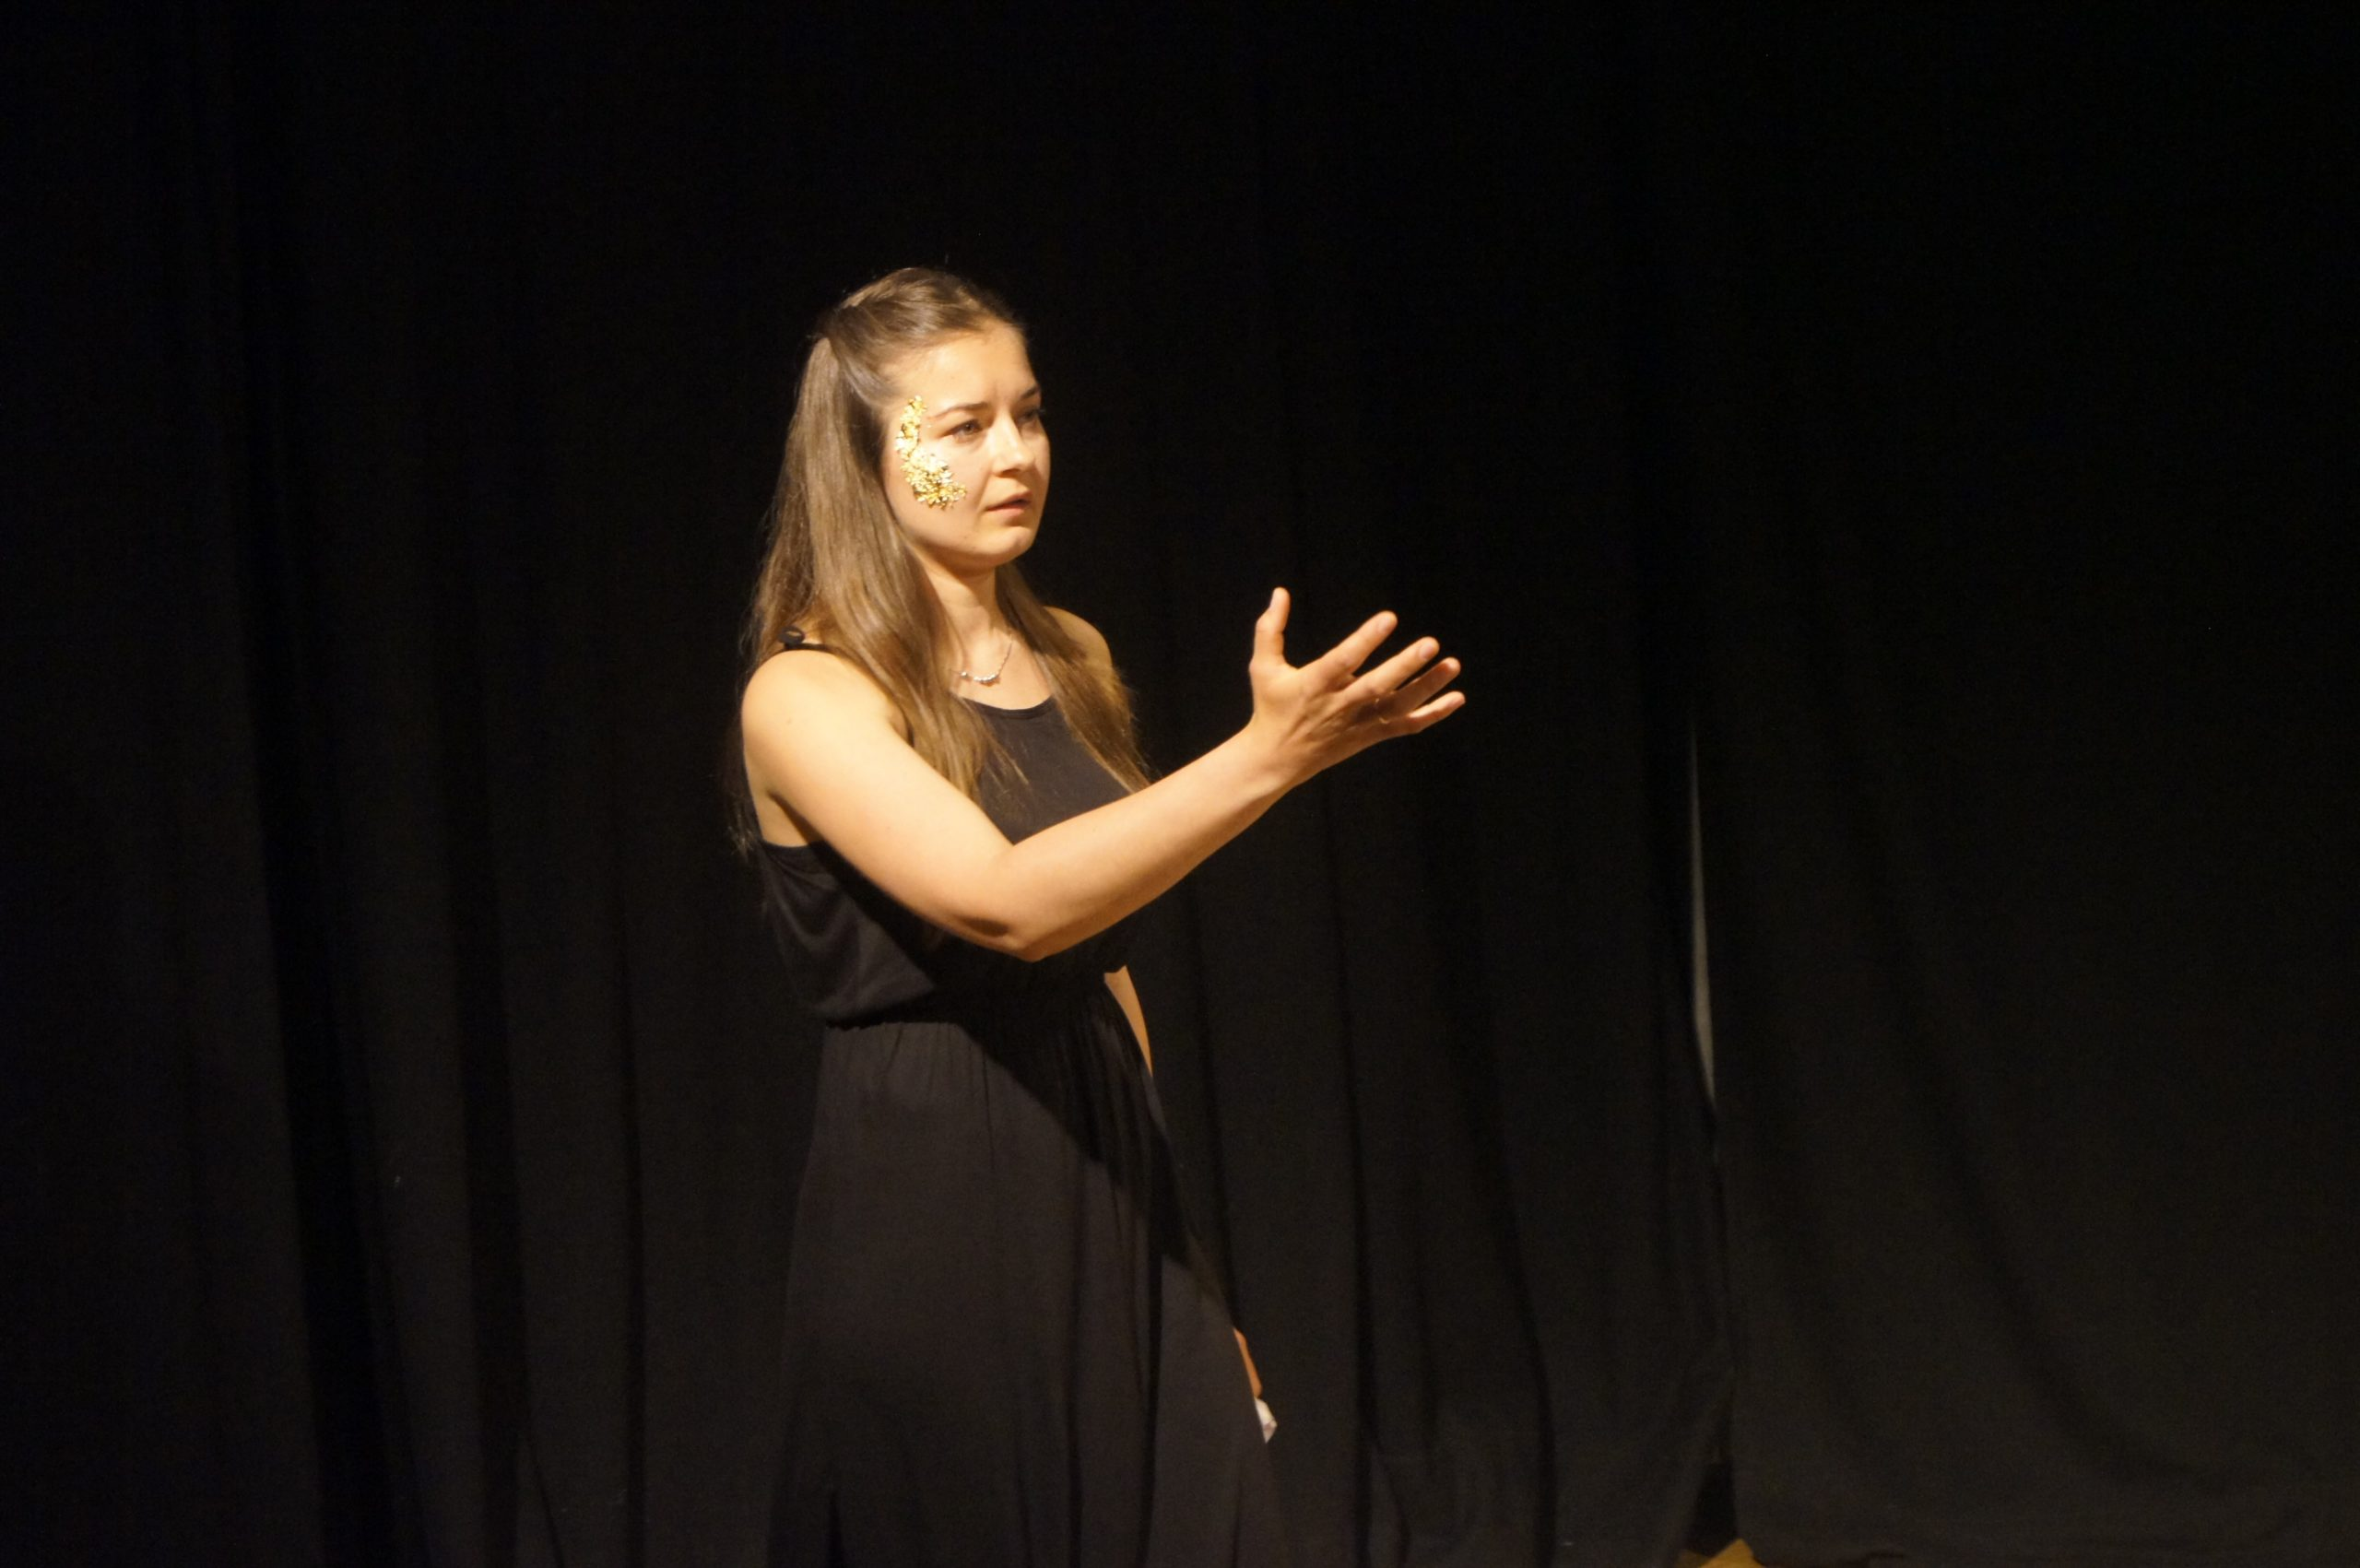 Photo from the theatre performance Keeping up with the Greeks. woman on stage with a black dress, dark blonde hair, golden flakes on her right cheek. Black curtain behind her. She is reciting